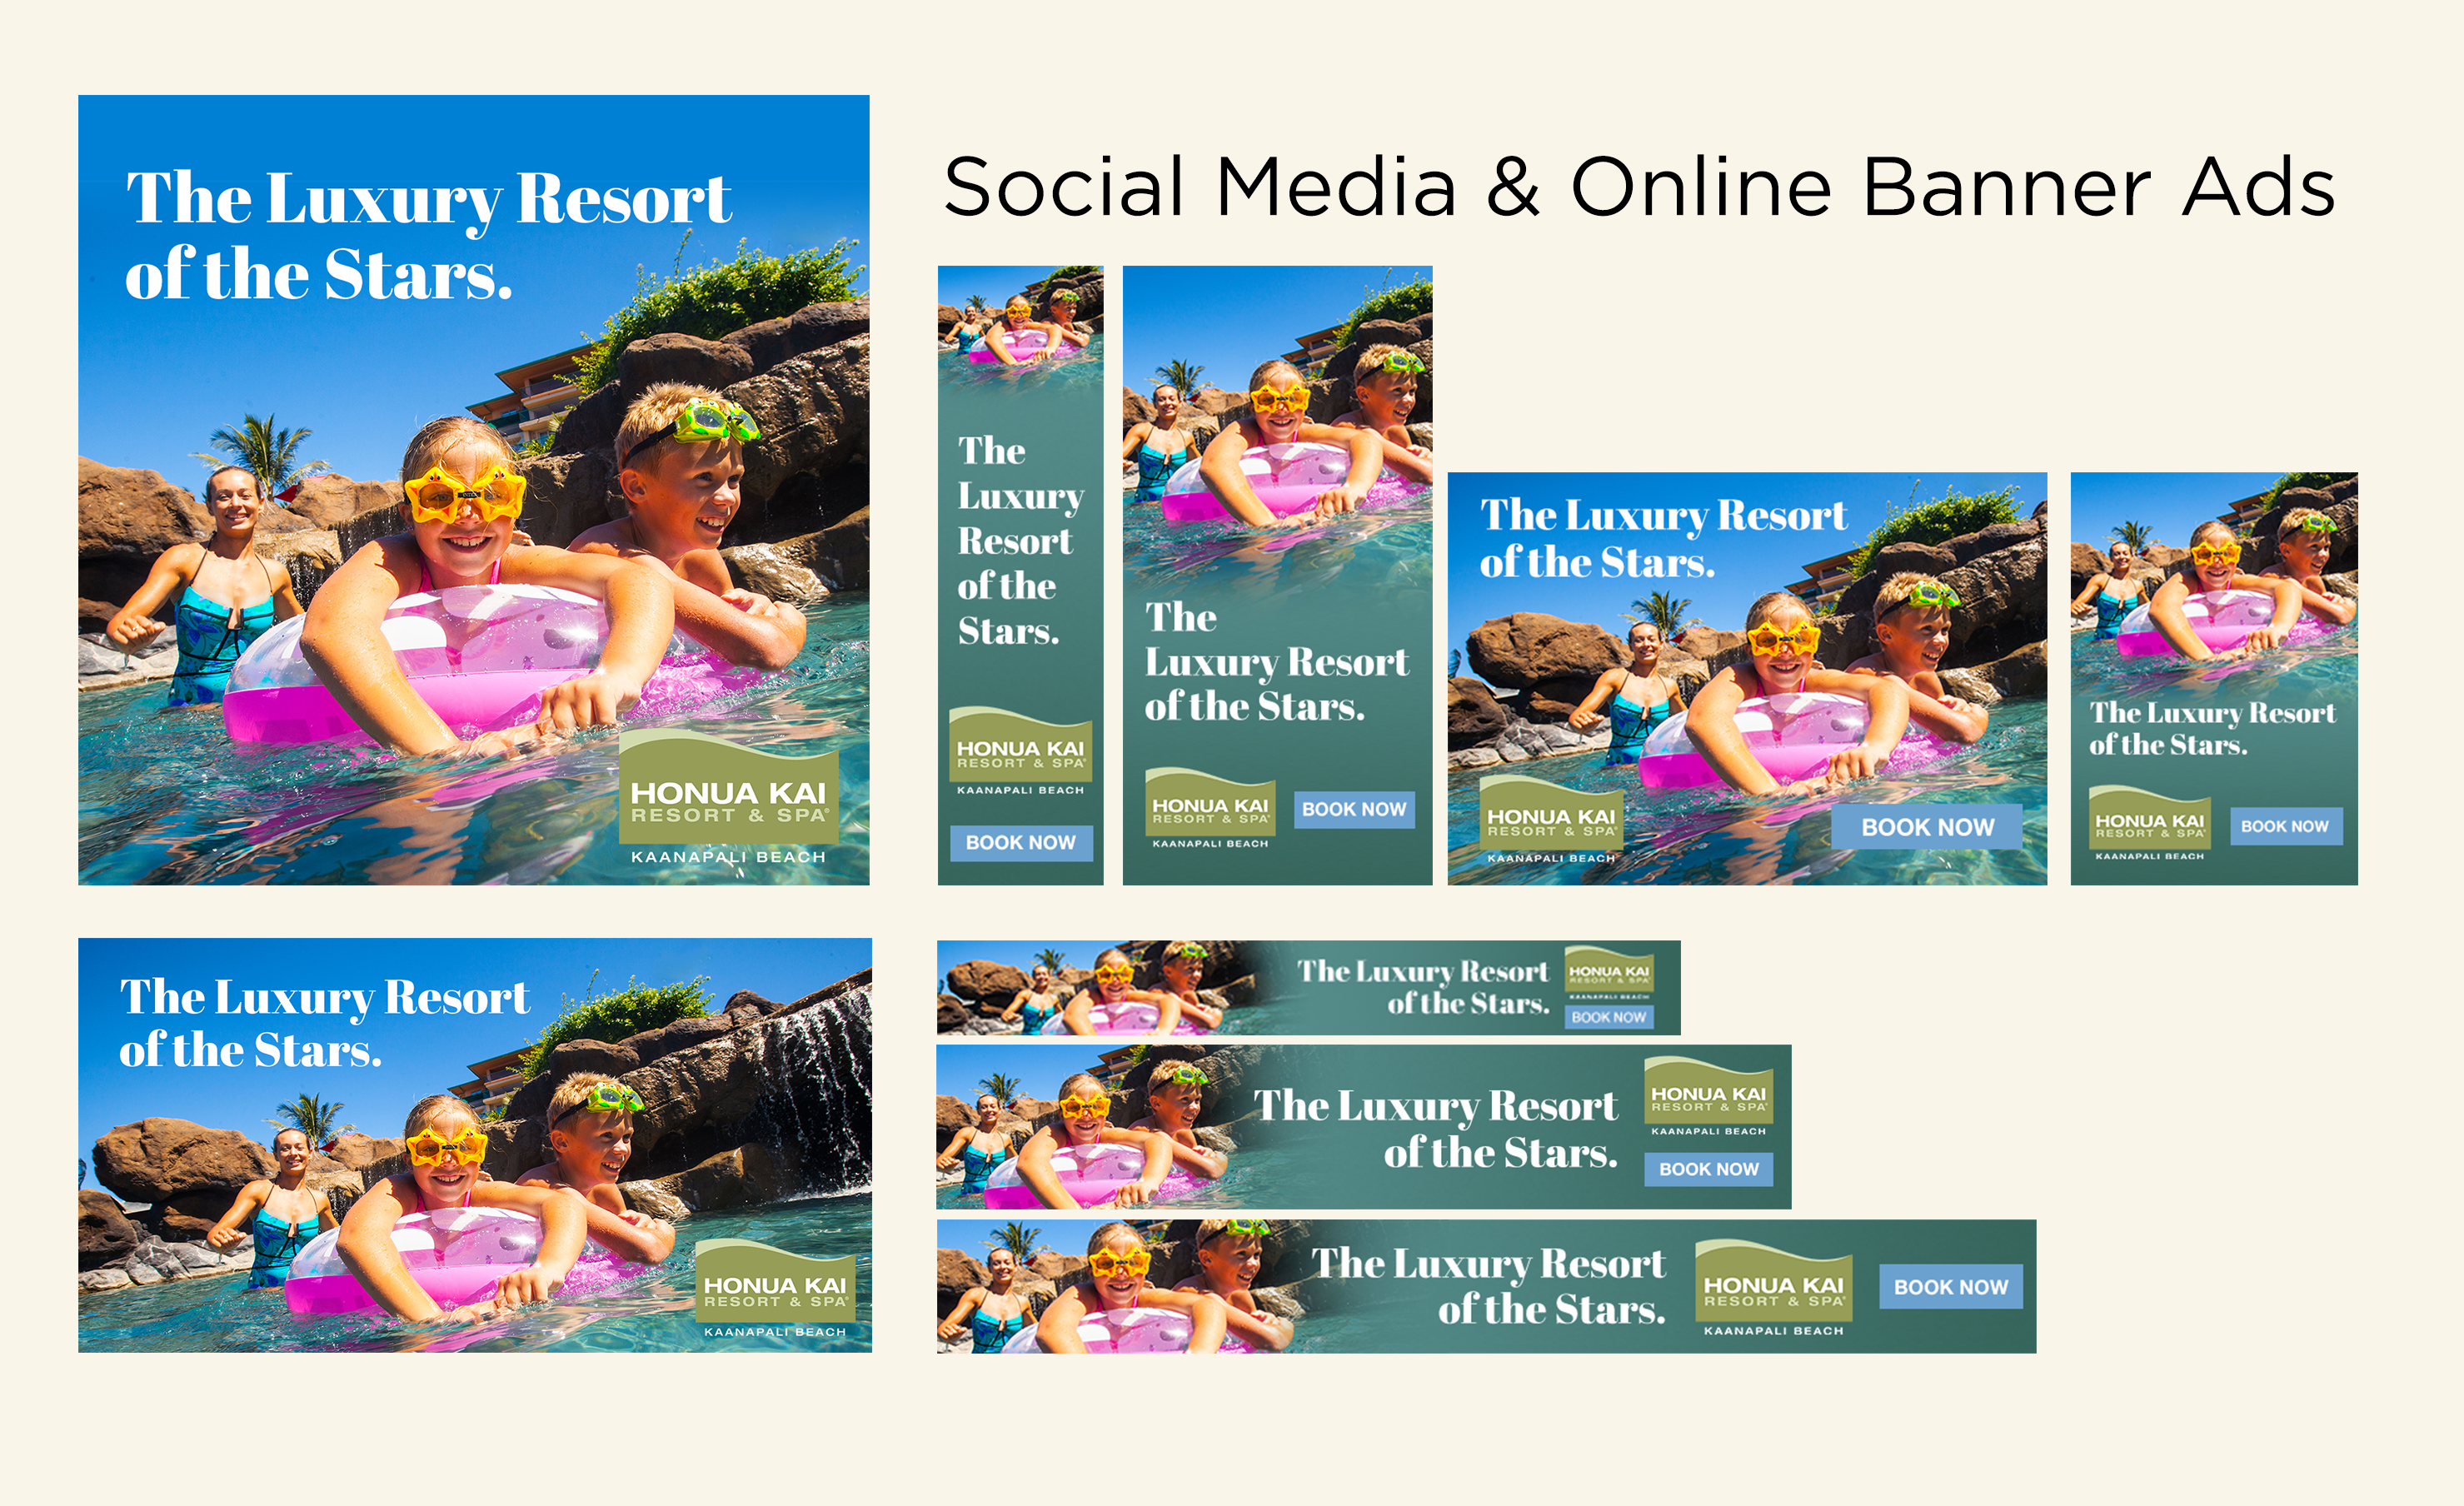 Ohio Luxury Inn Website Design Seo And Social Media: Team Vision Marketing